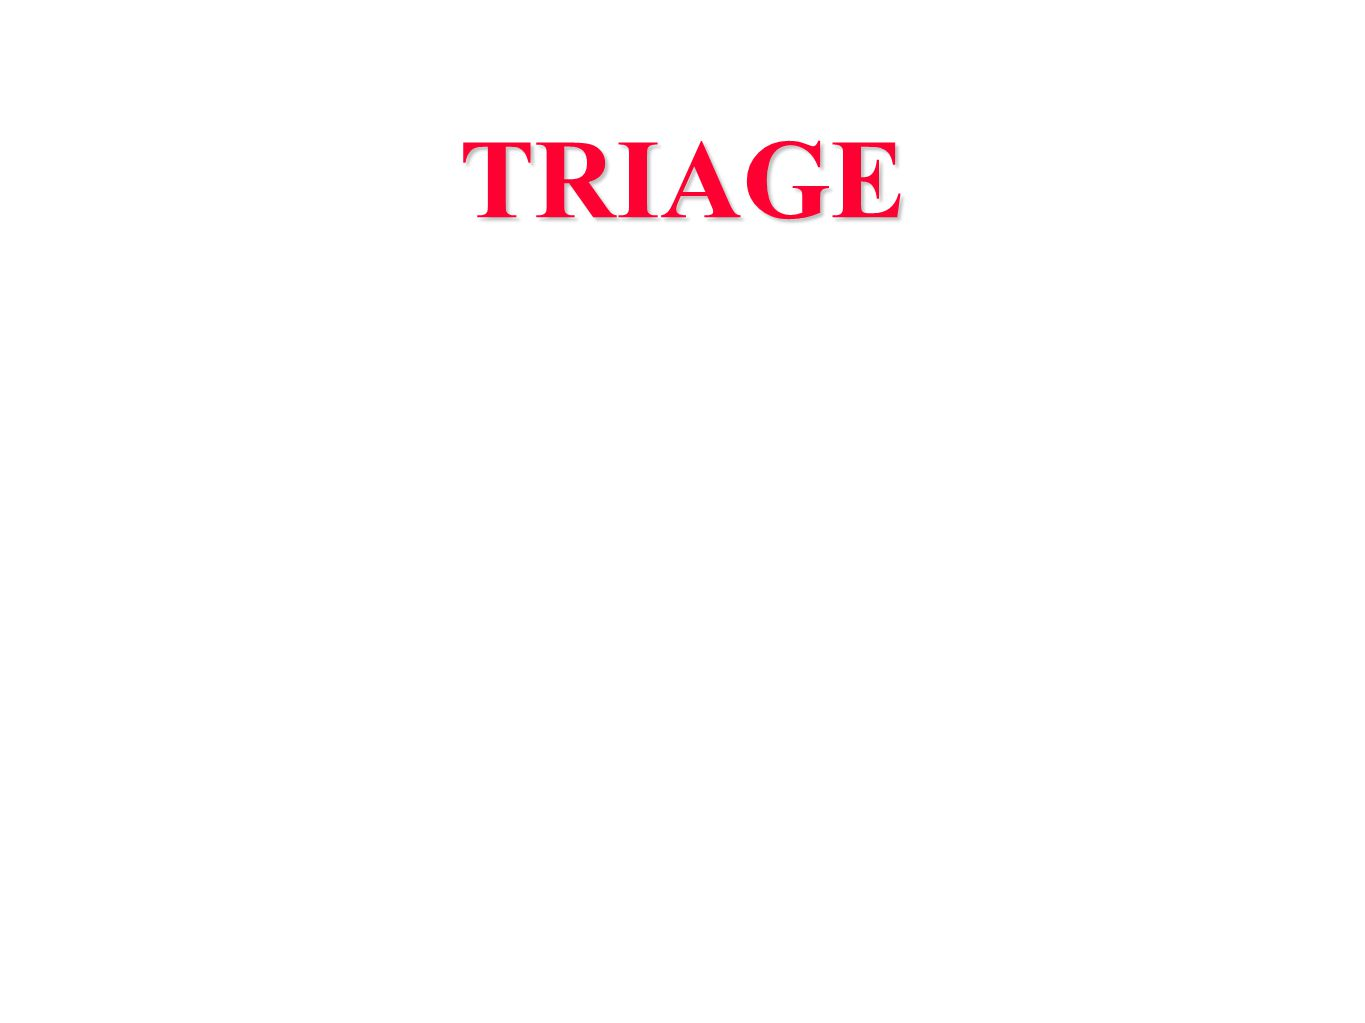 TRIAGE Il triage.